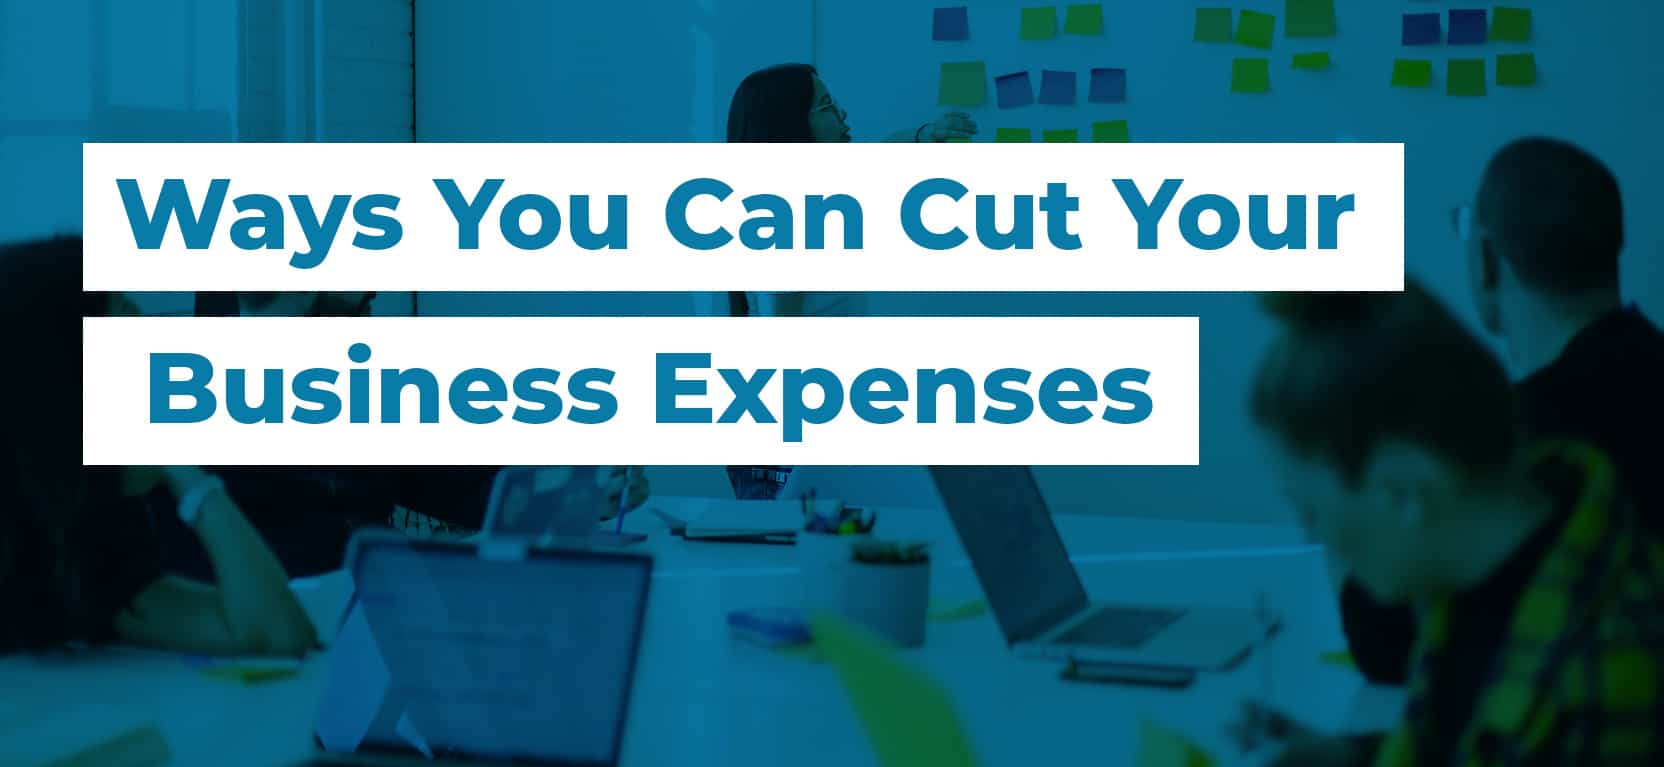 38 Ways You Can Cut Your Business